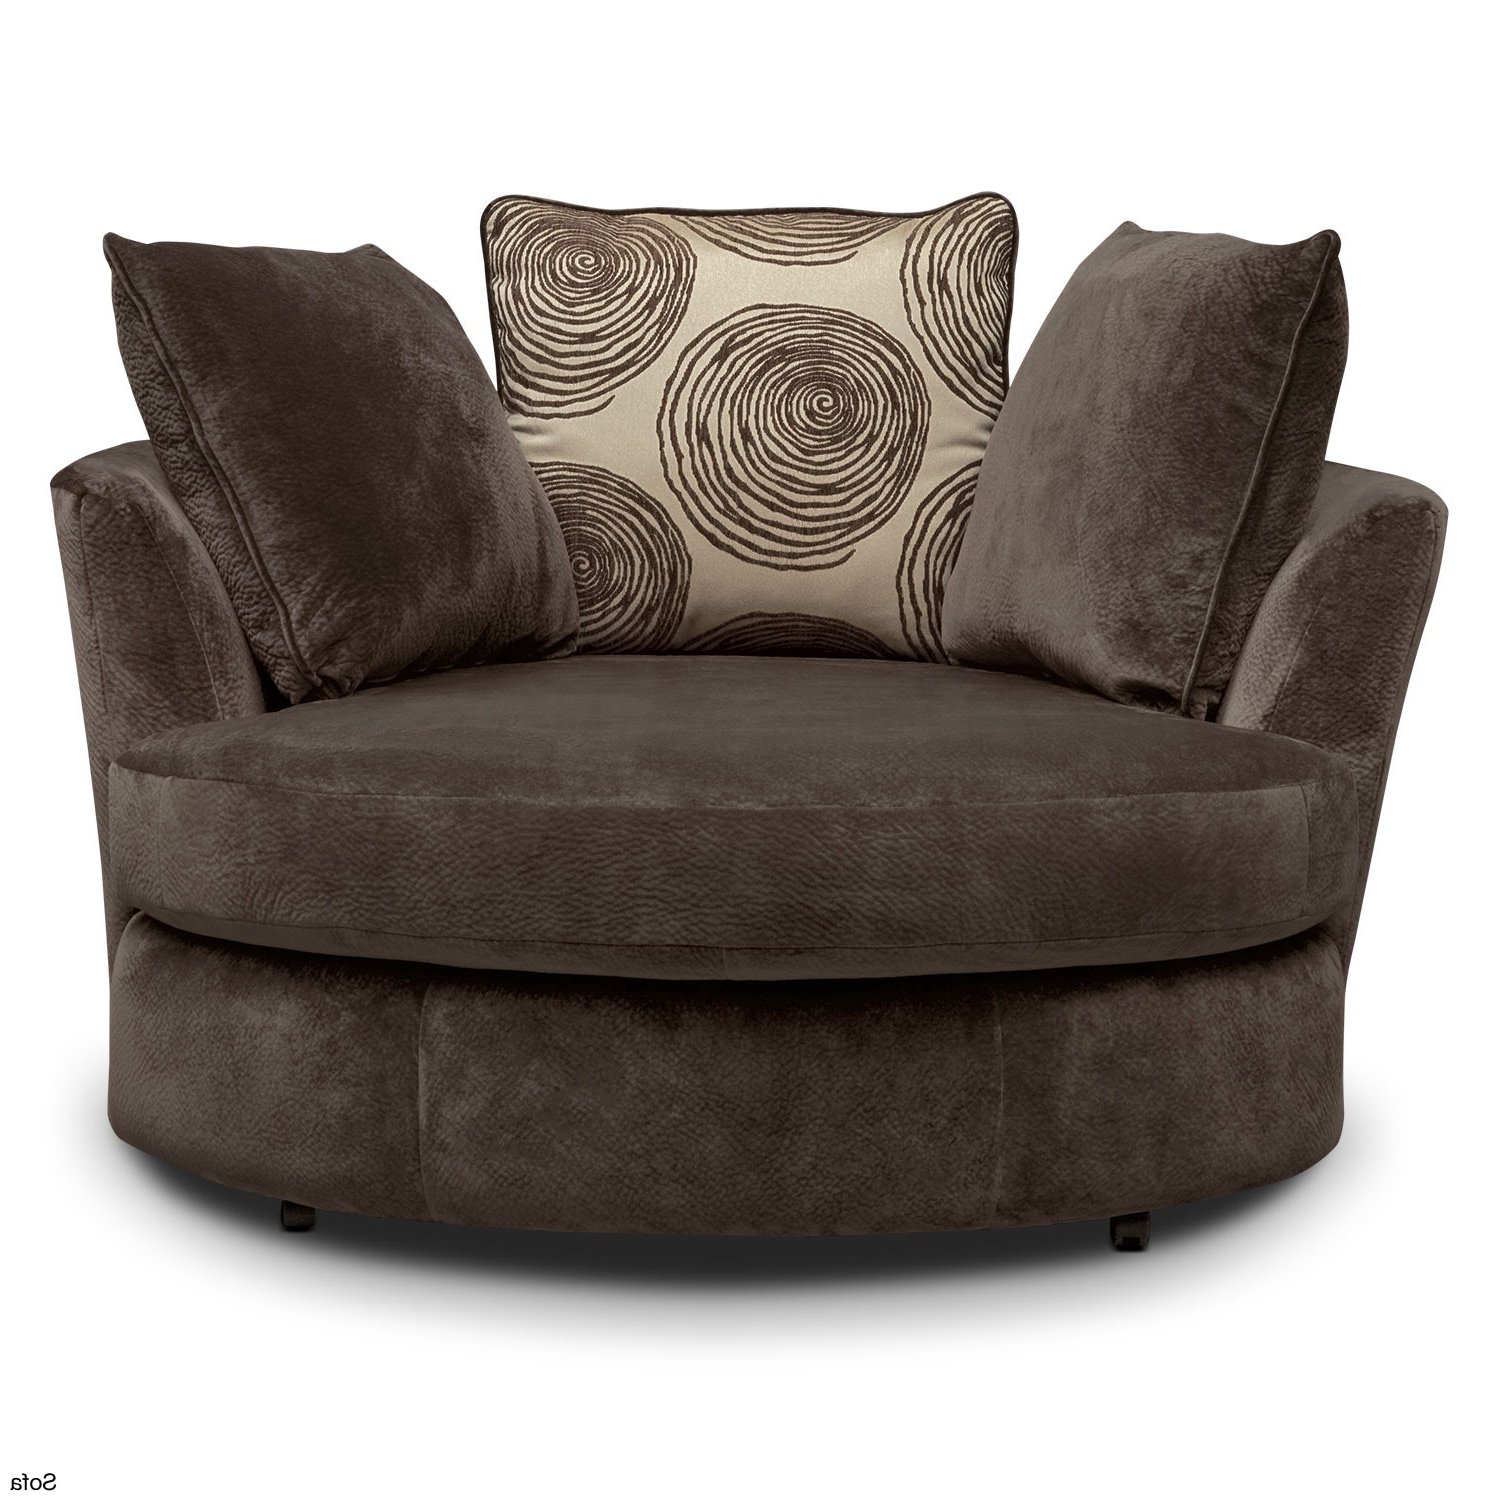 Snuggle Sofas Inside Favorite Leather Swivel Chair Couch Grey Snuggle Sofa And Cuddle Full Size (View 17 of 20)